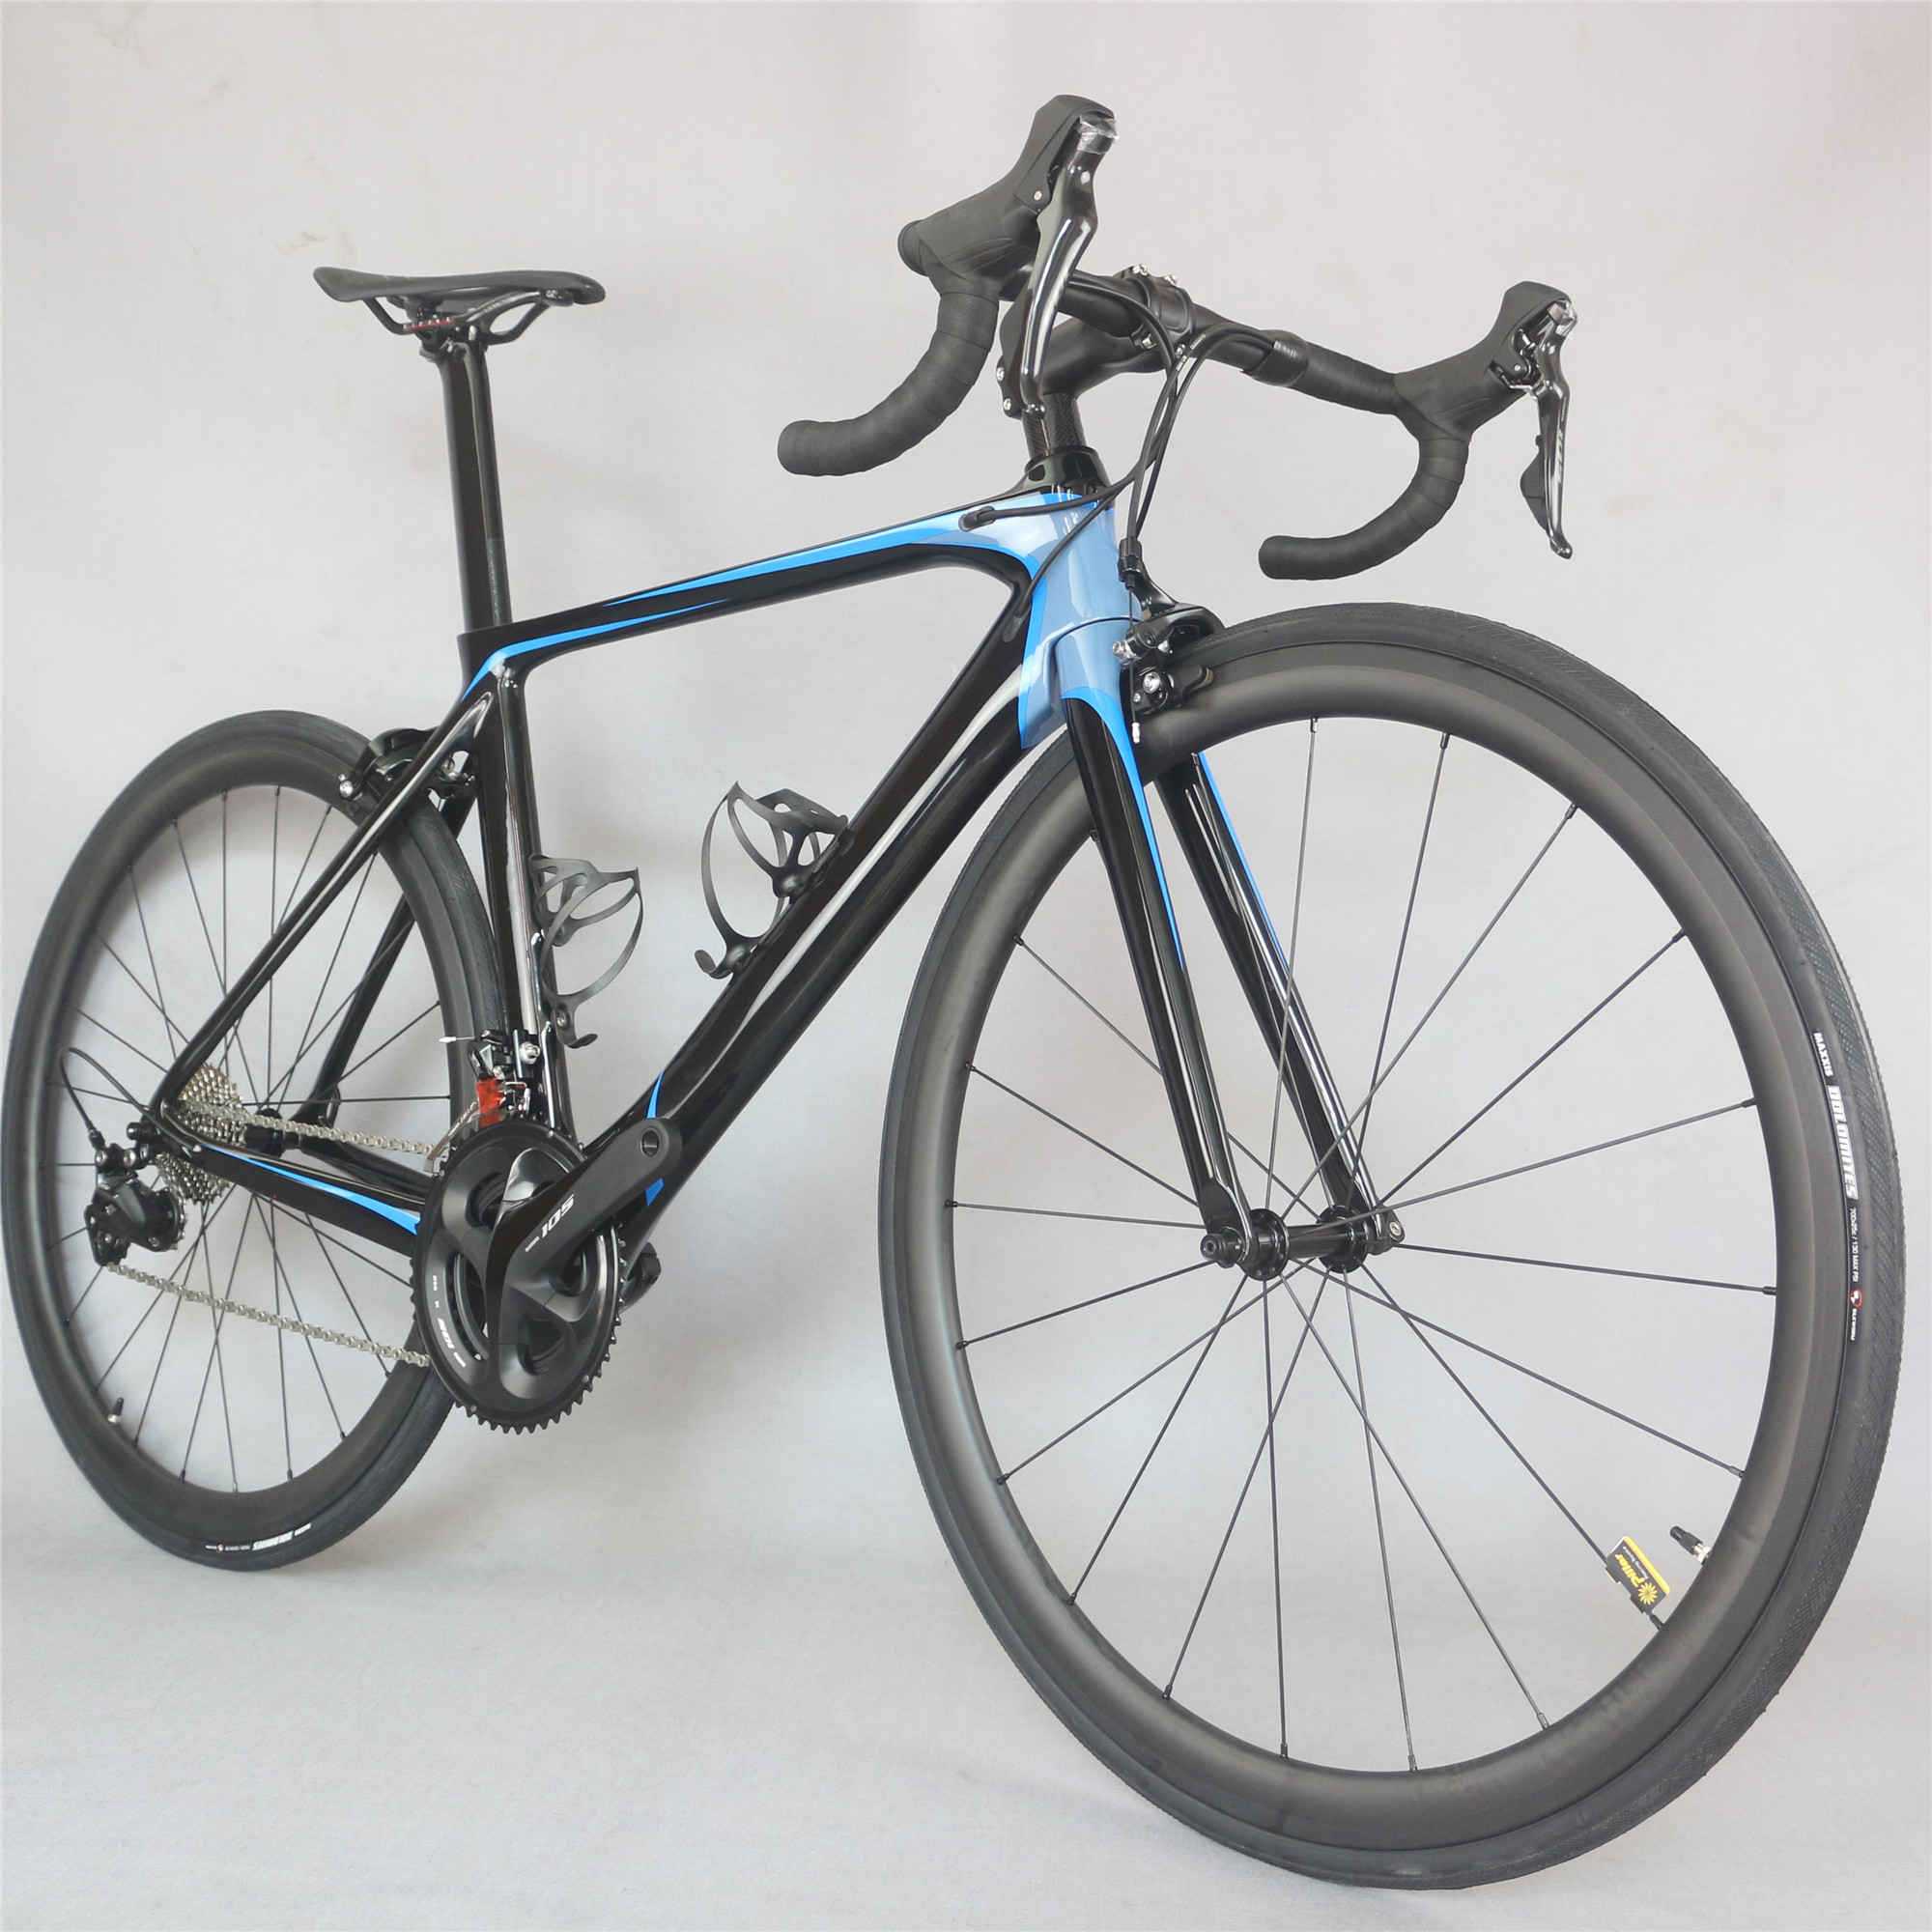 2020 Aero Custom Paint  Complete  Road Bicycle FM268 With Sh1mano R7000 Groupset 22 Speed Carbon Road  700c Wheeset